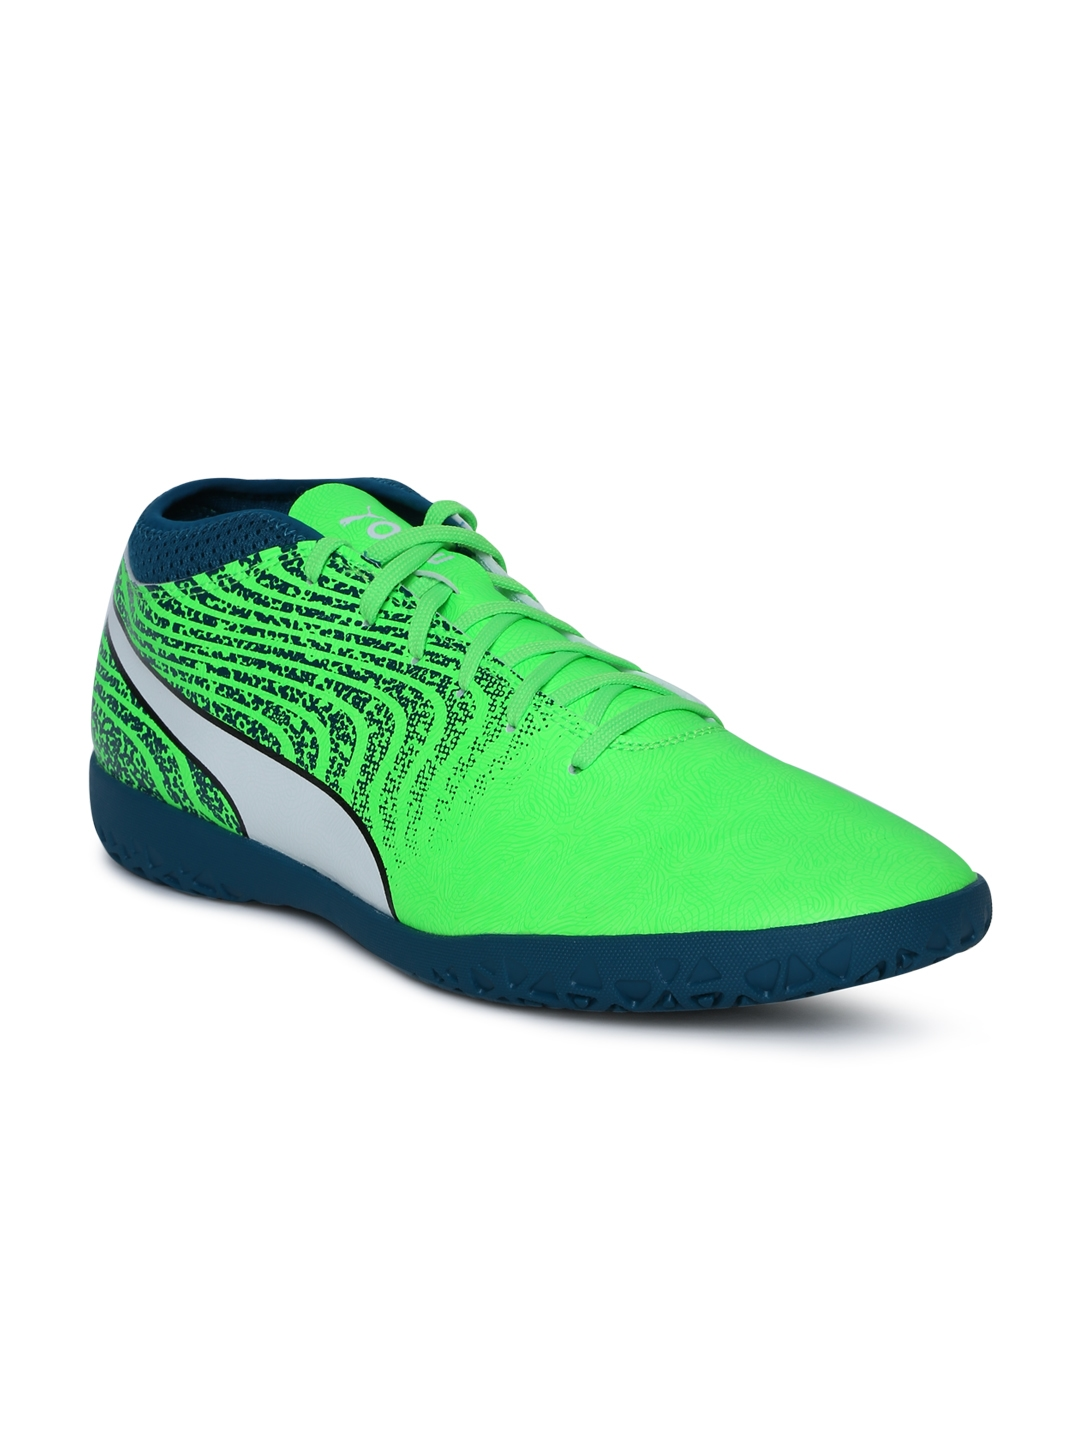 7ed792c2f980 Buy Puma Men Green One 18.4 IT Indoor Training Shoes - Sports Shoes ...